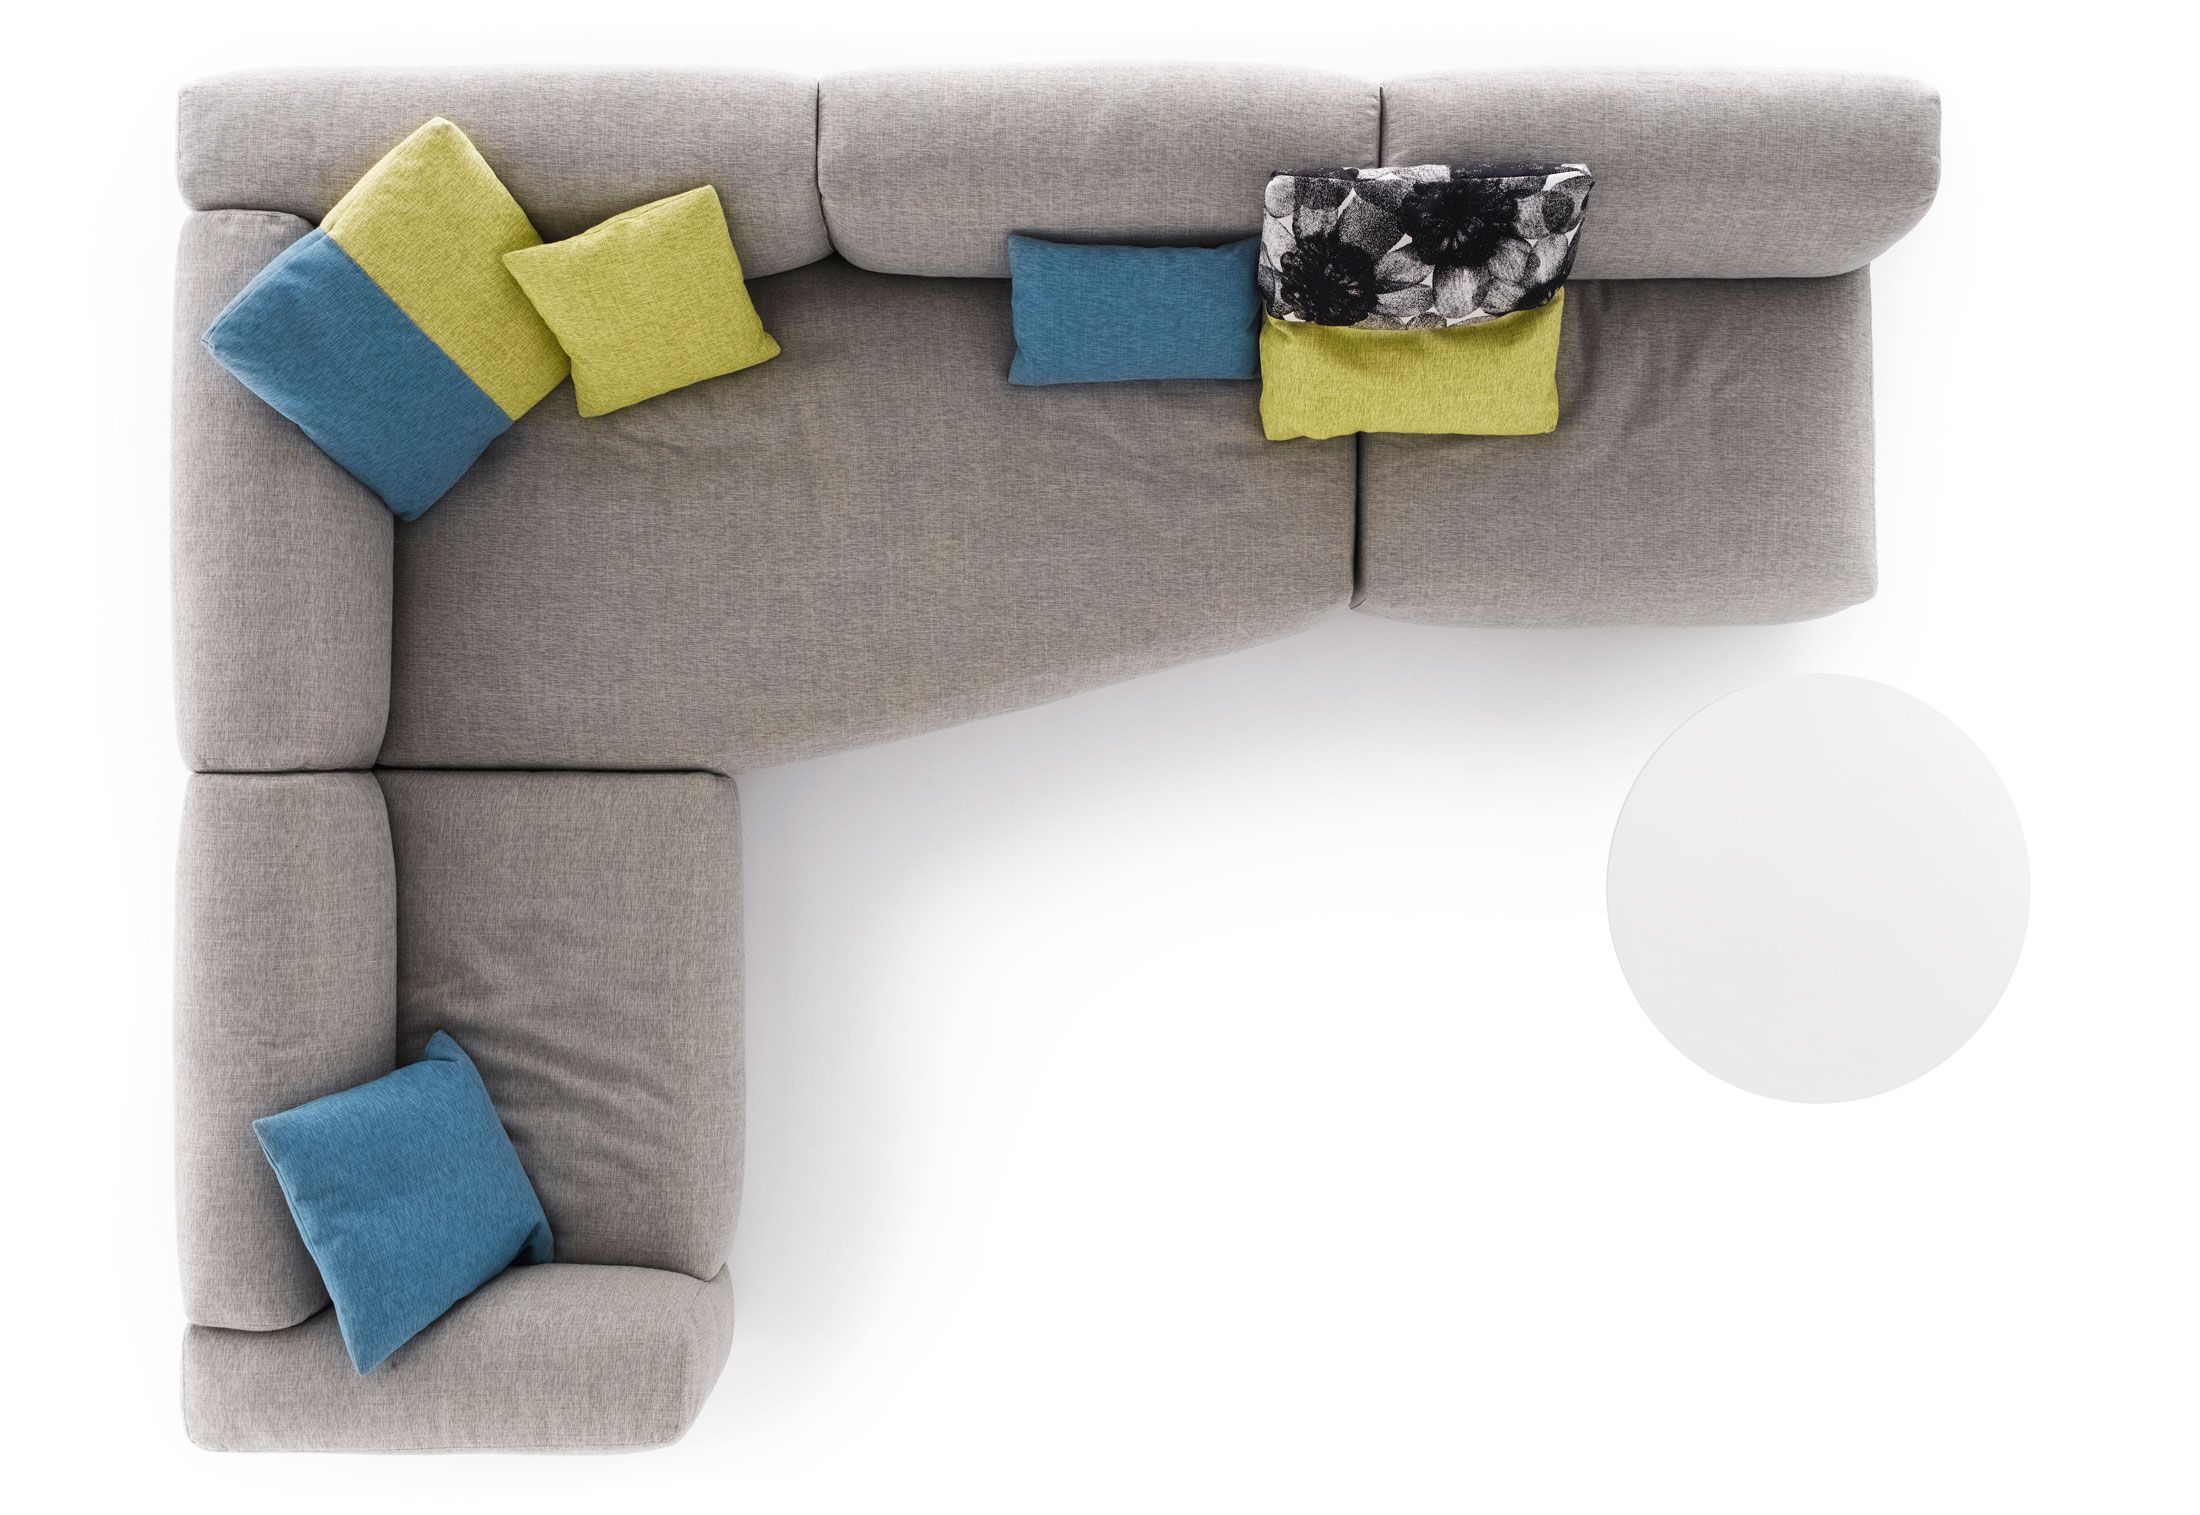 Sofa Top View Google Search Sofa Set Designs Upholstered